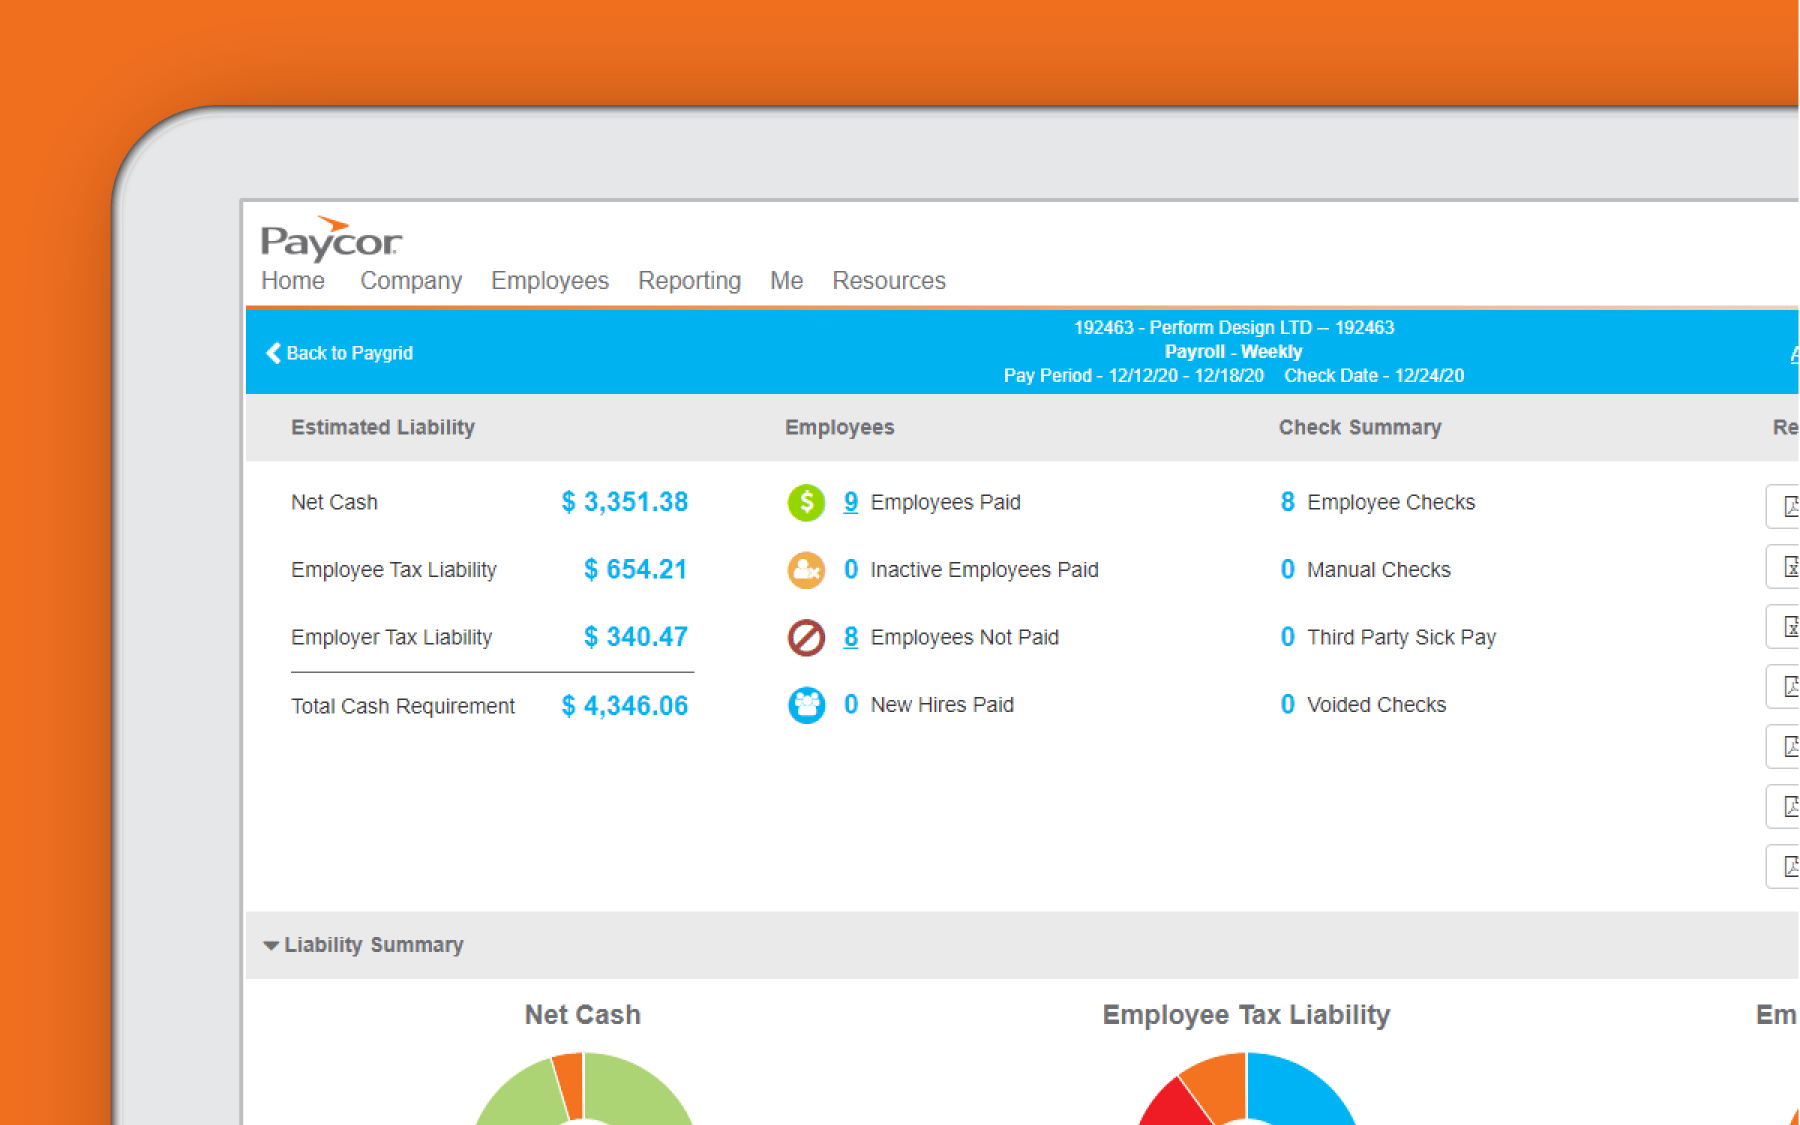 Corner of tablet showing employee reporting dashboard against orange background